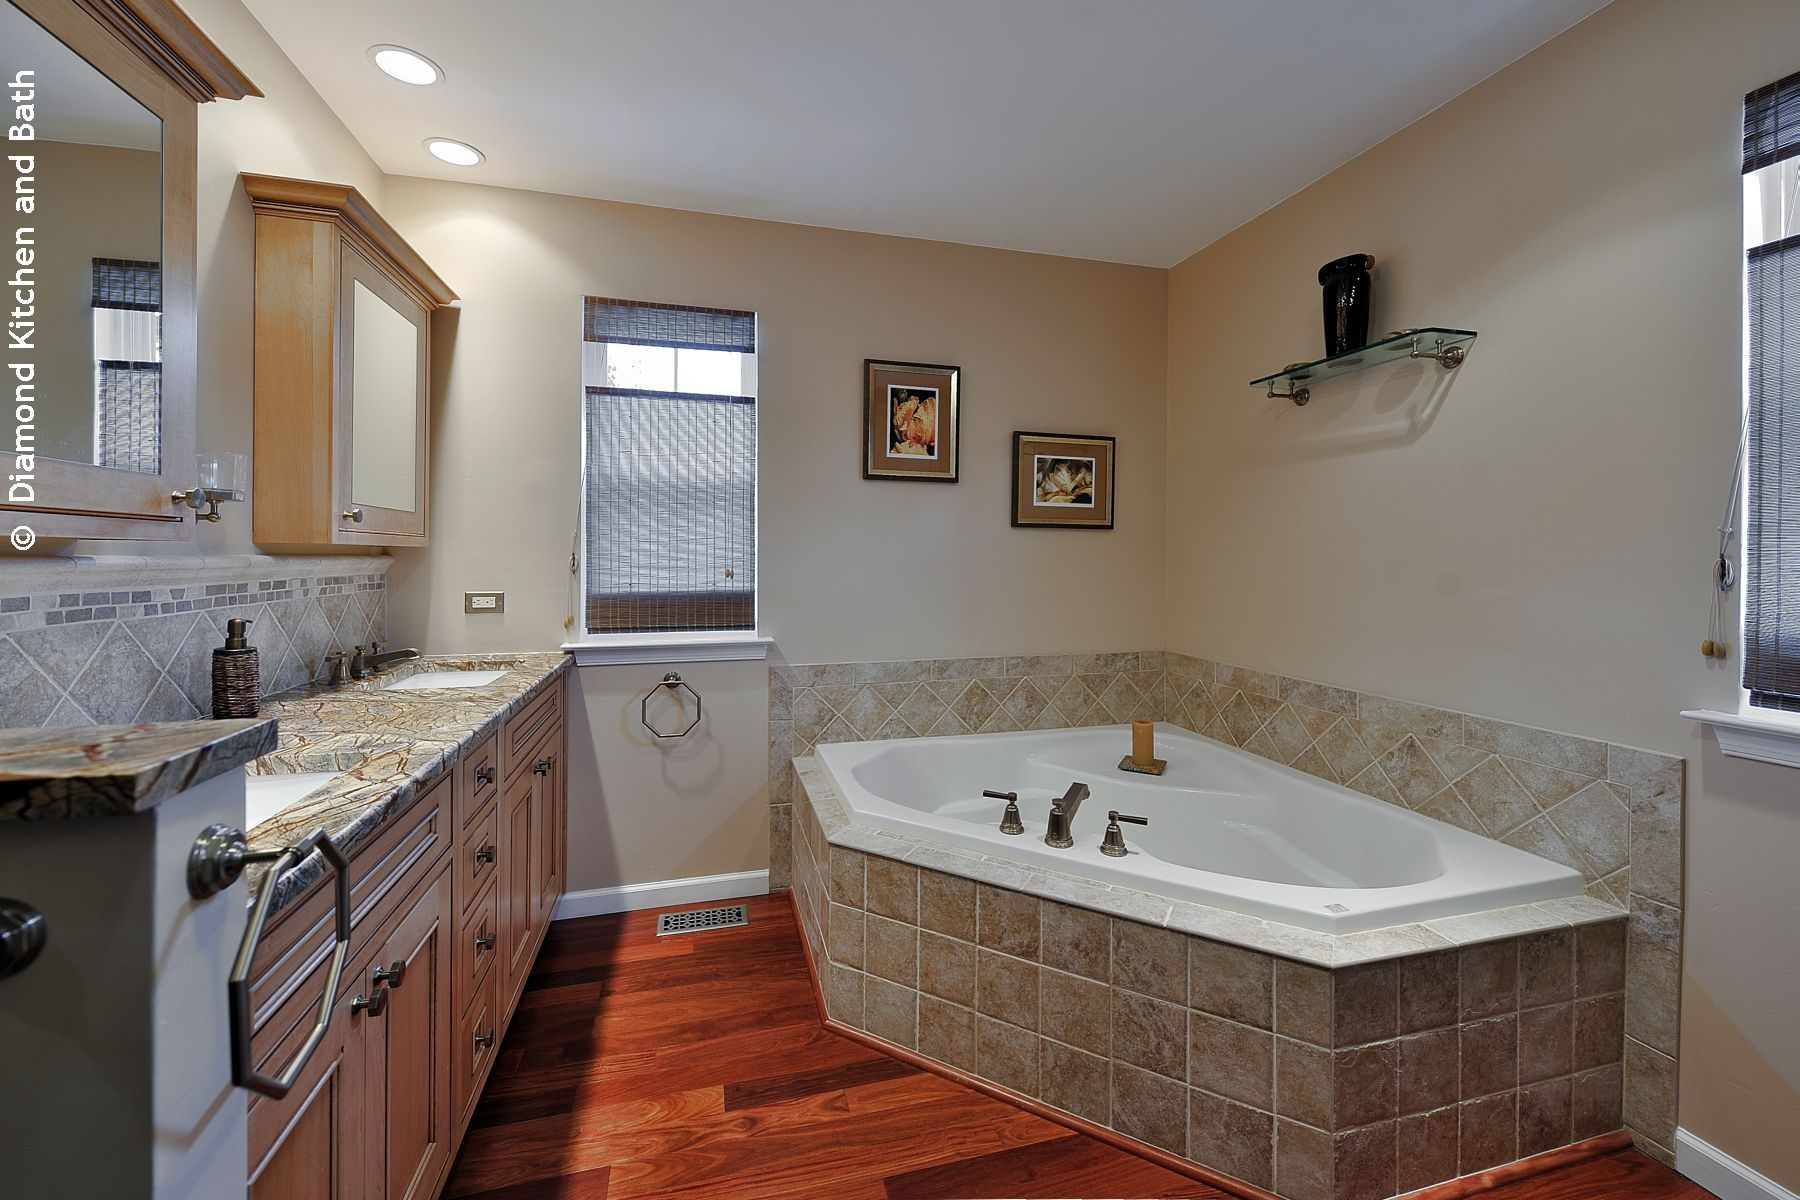 Bathroom Remodeling Virtual Tour in Hatboro, PA